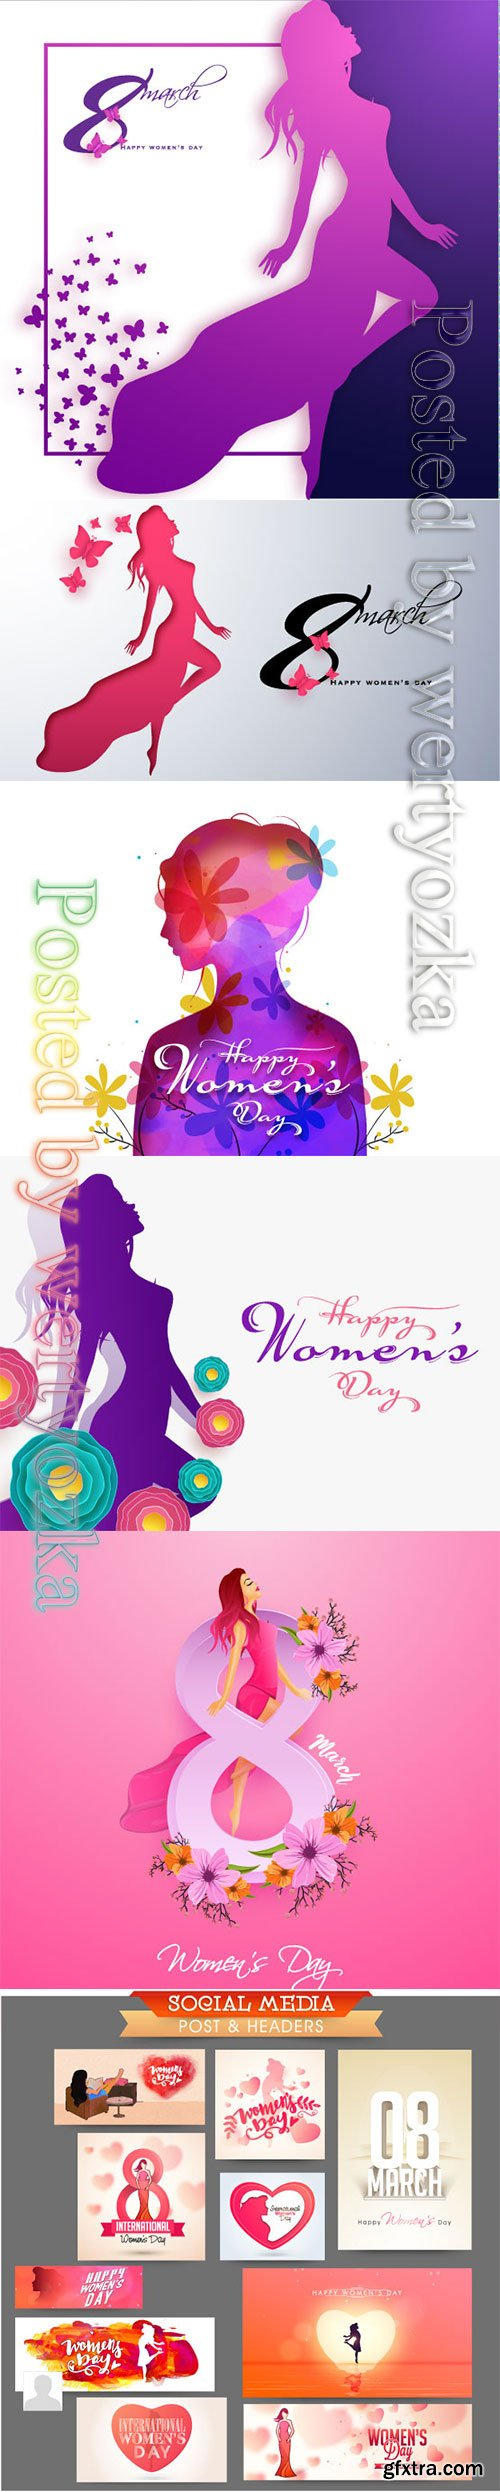 Happy Women's Day greeting card design with beautiful lady